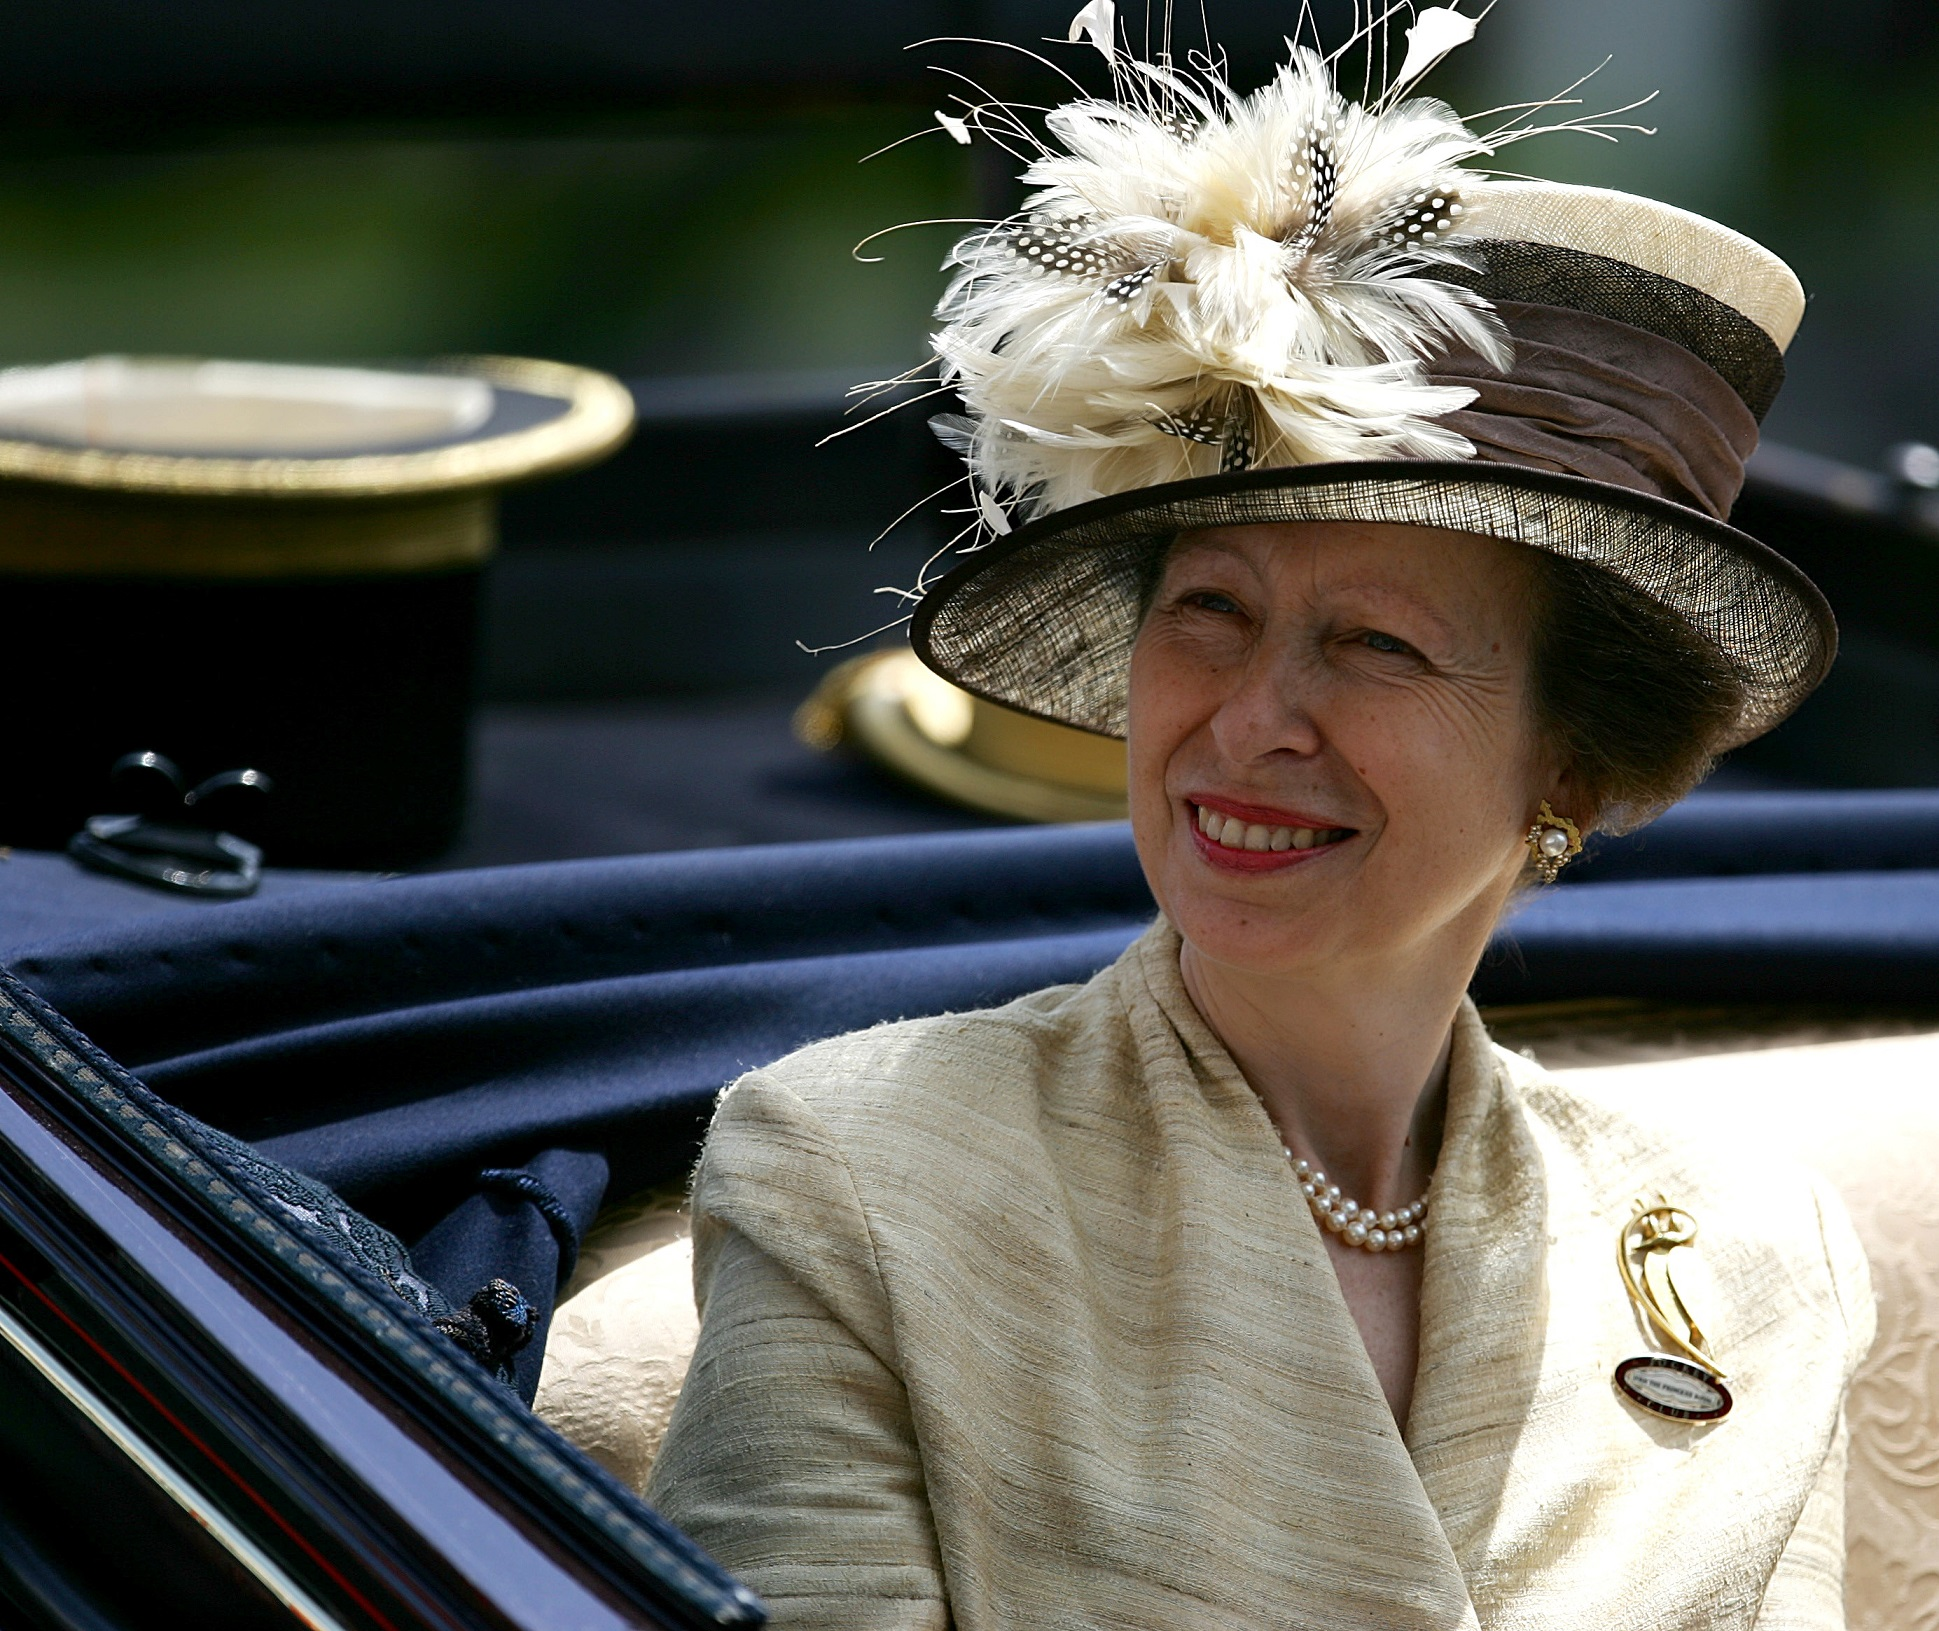 File photo dated 20/06/06 of the Princess Royal arriving at Royal Ascot Anne celebrates her 70th birthday on Saturday.,Image: 551795800, License: Rights-managed, Restrictions: FILE PHOTO, Model Release: no, Credit line: Chris Young / PA Images / Profimedia